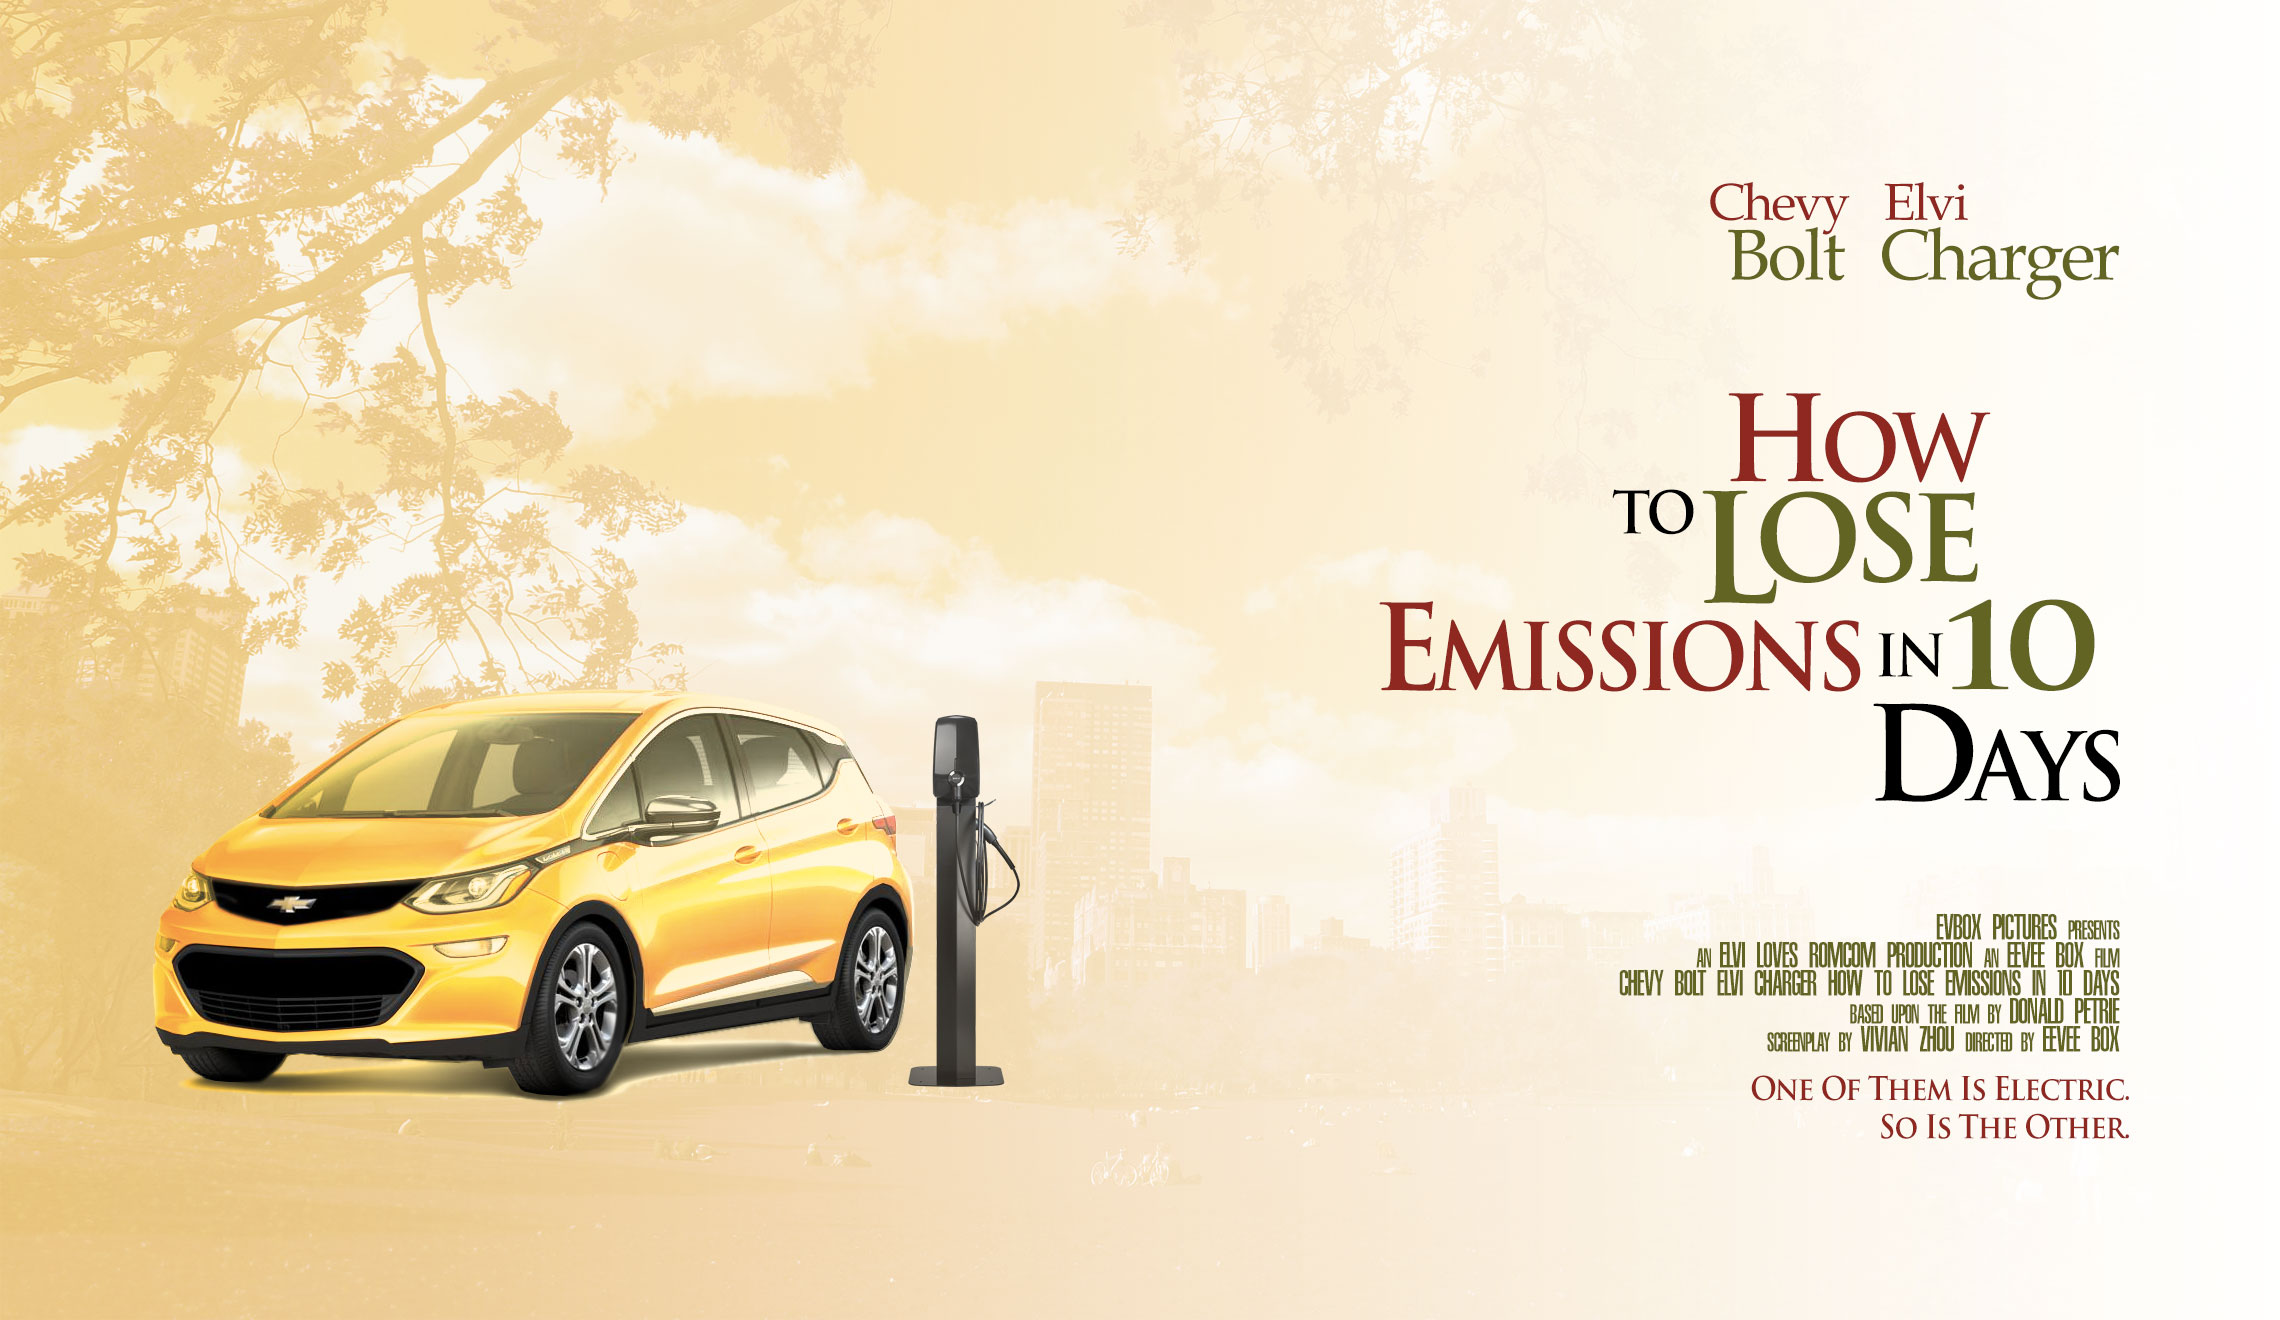 How to lose emissions in 10 days